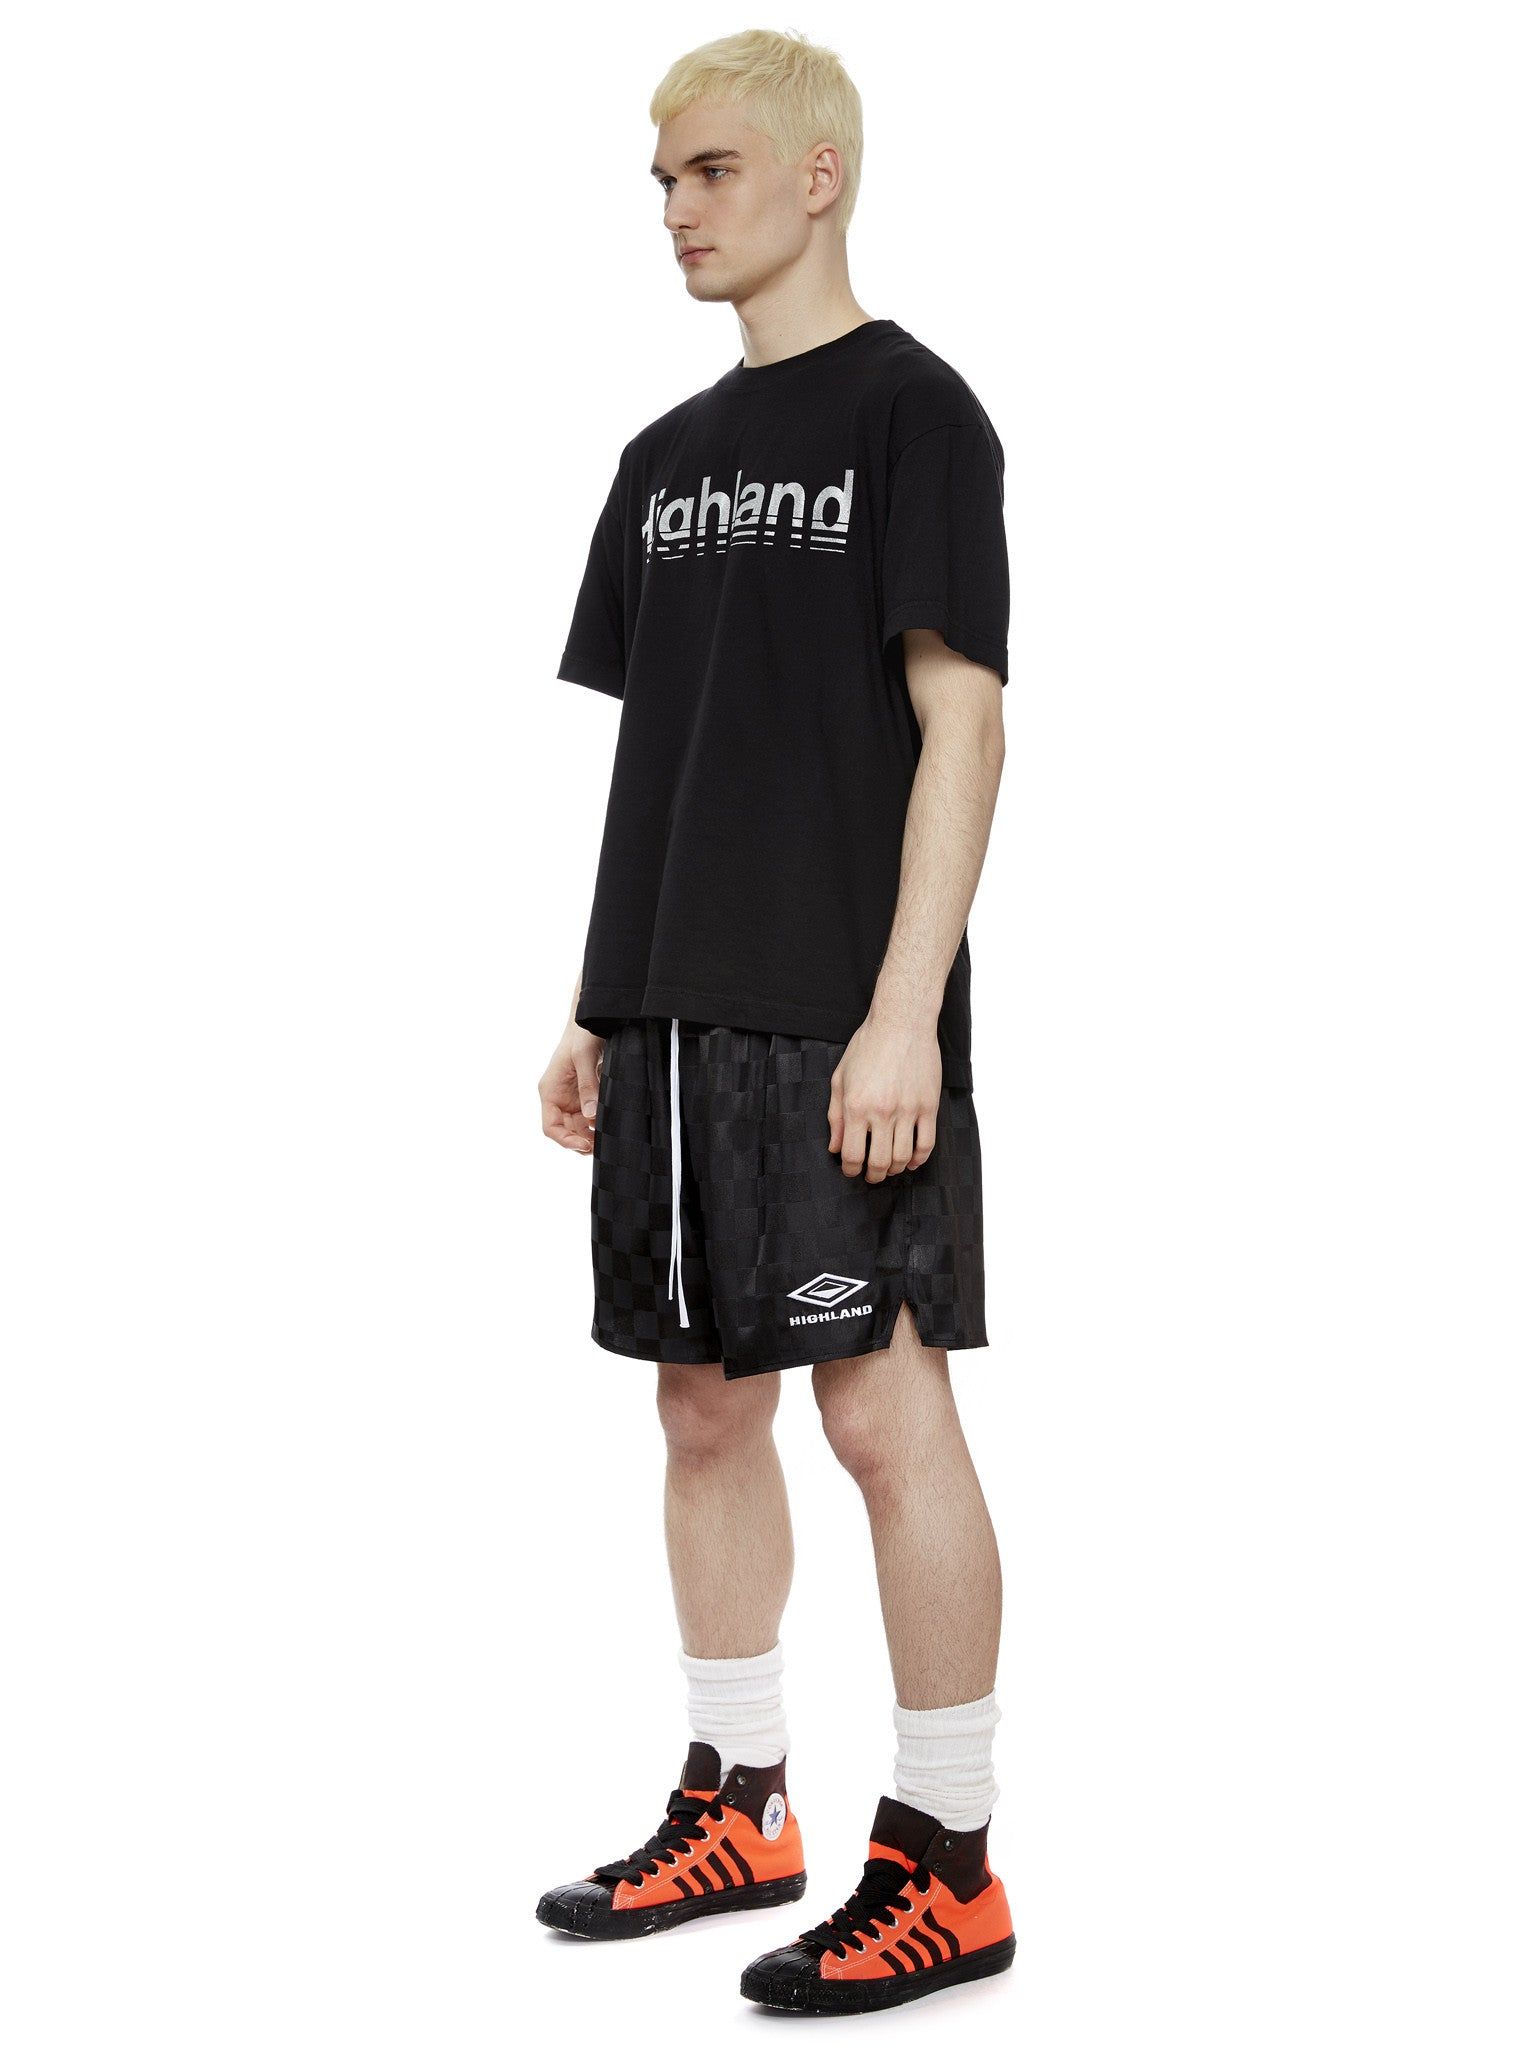 S/S Logo T-Shirt in Black/Silver